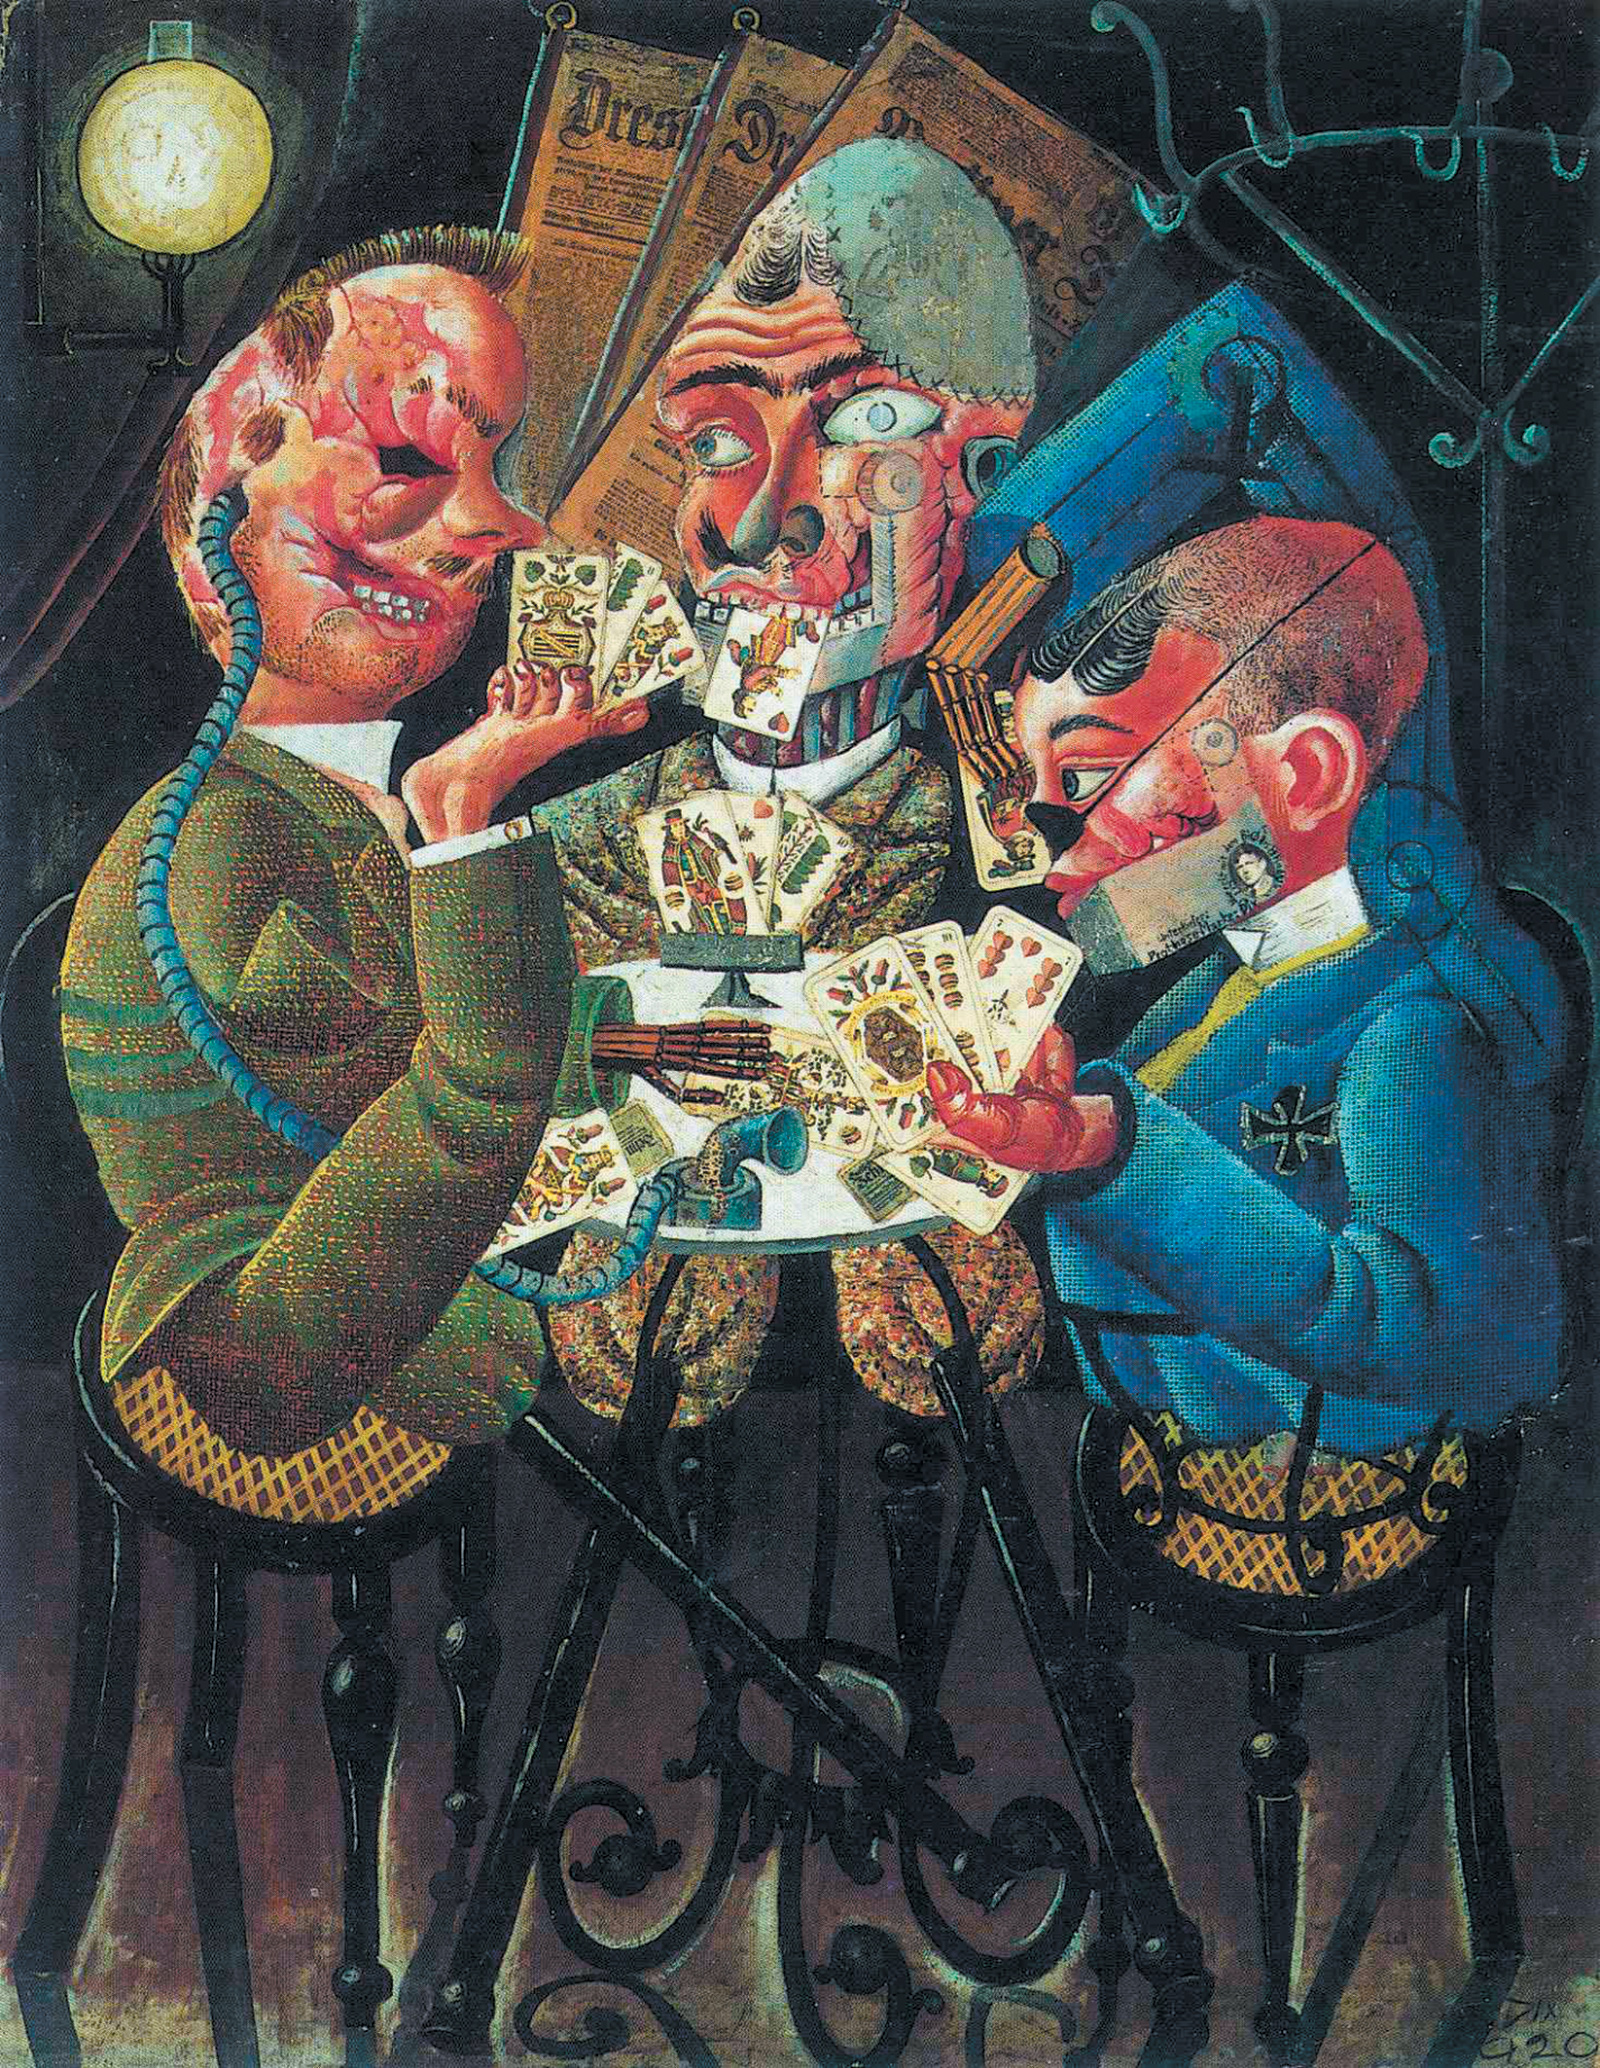 Otto Dix: The Skat Players, 1920